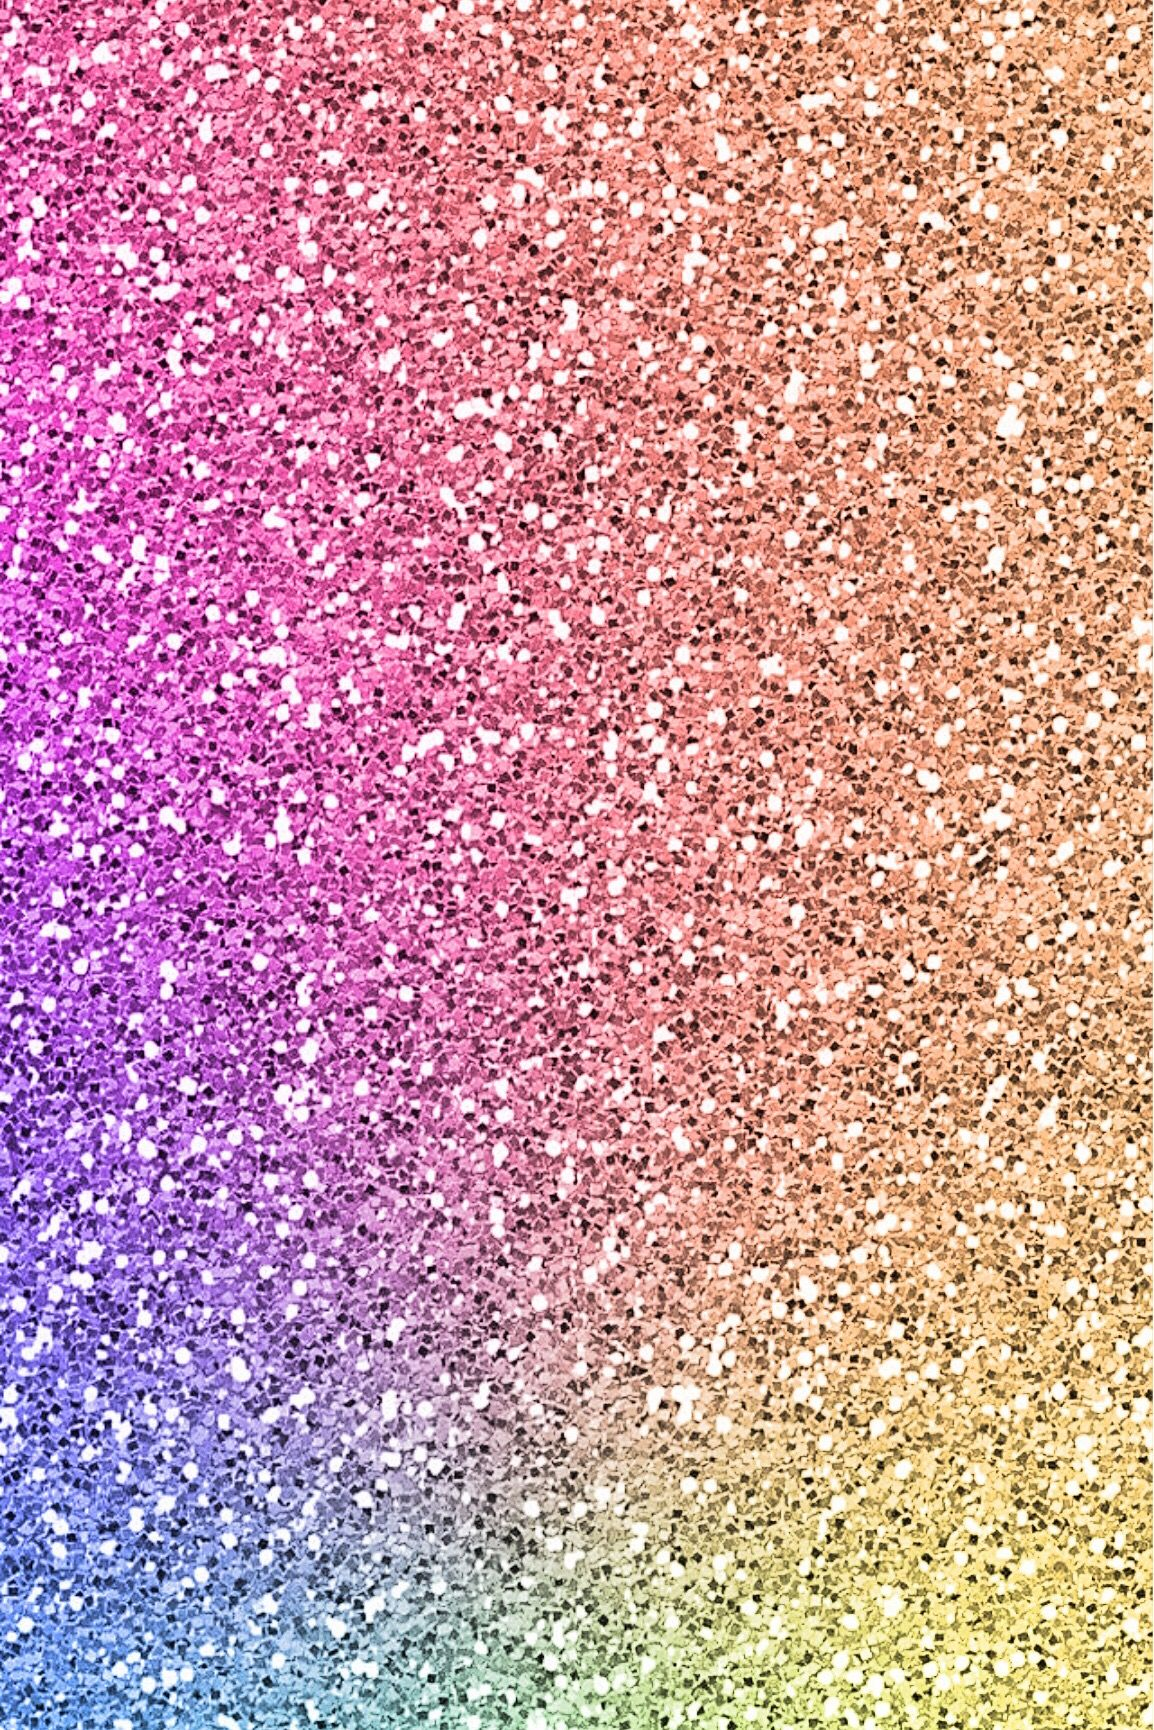 Pastel Bling Androidwallpaper Iphonewallpaper Glitter Sparkle Galaxy Bling Shimmer Crystals Bling Wallpaper Glitter Phone Wallpaper Sparkle Wallpaper